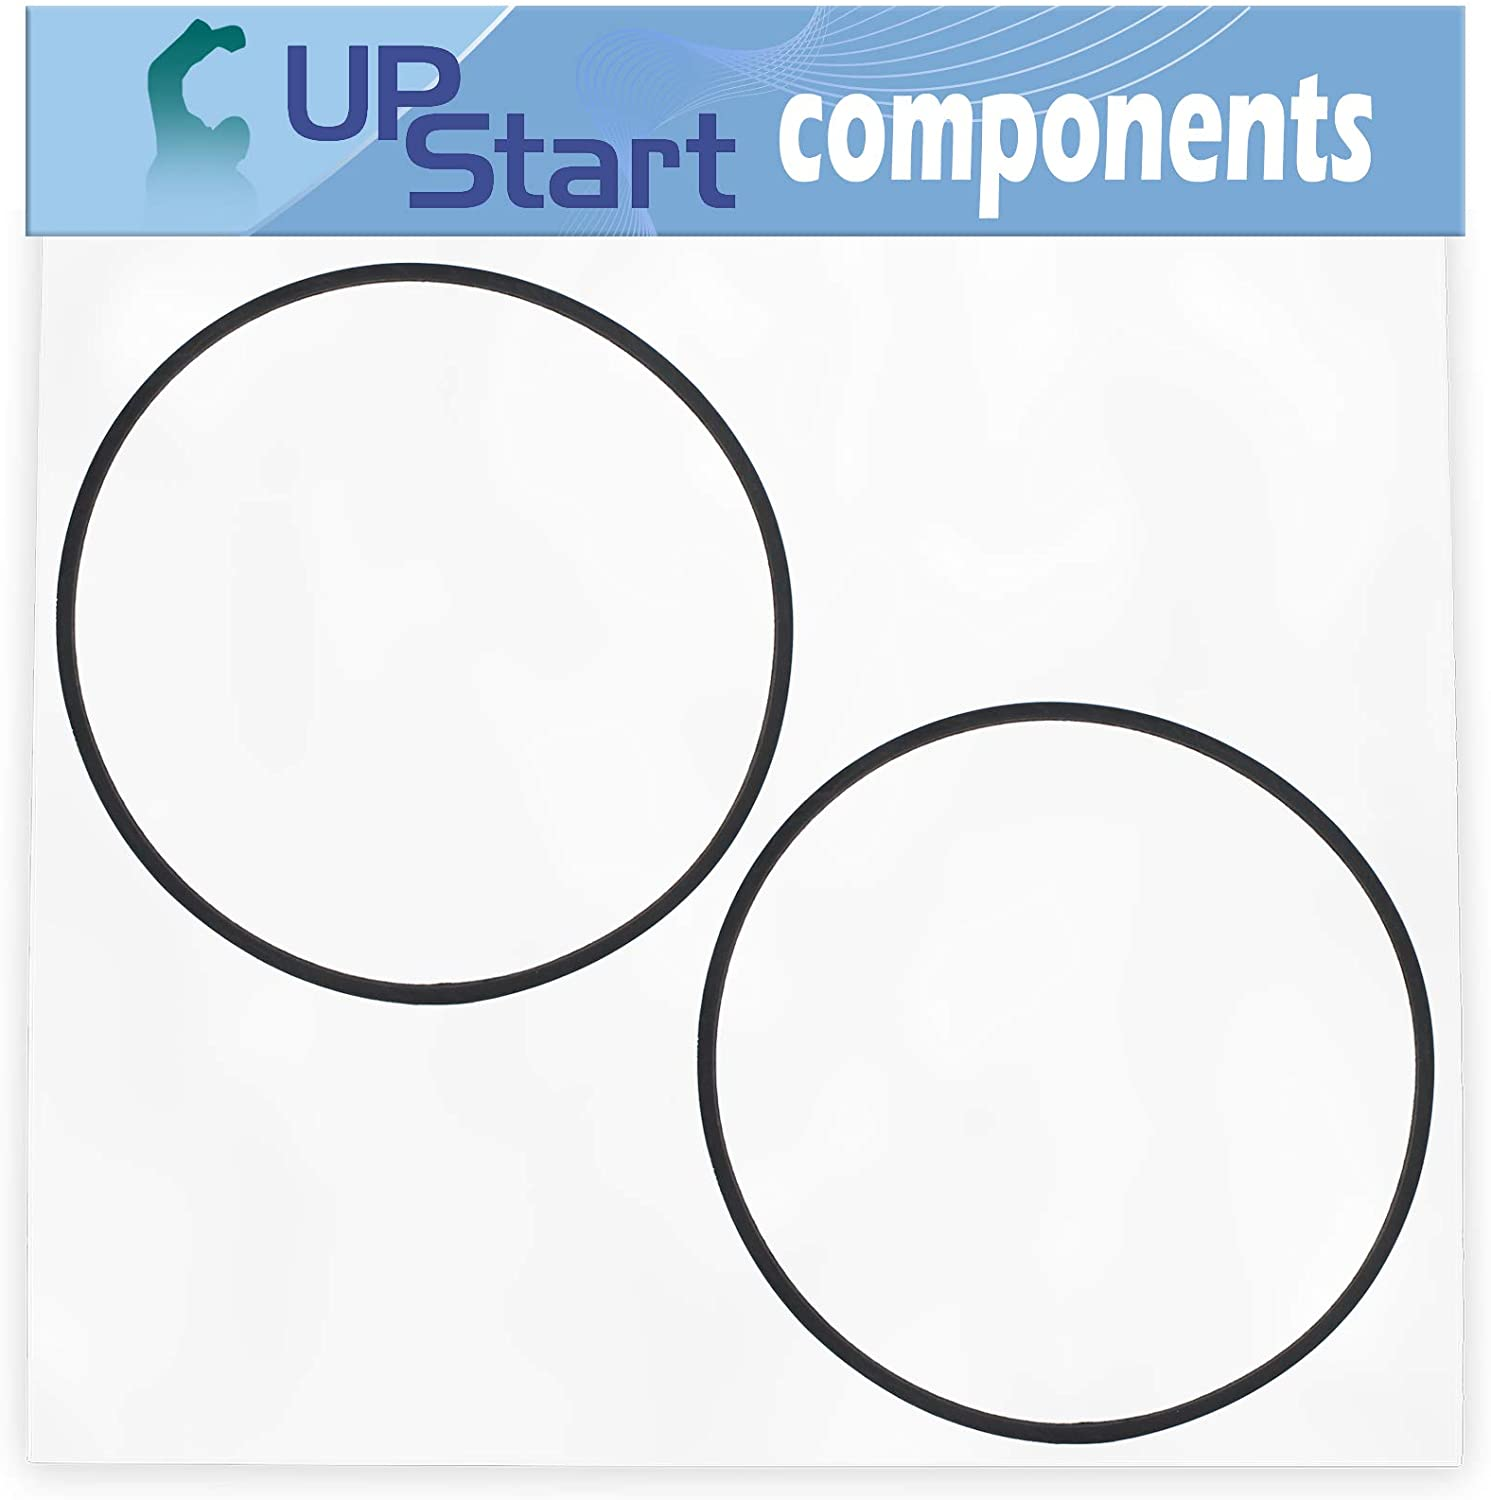 UpStart Components 2-Pack 115-4669 V-Belt Replacement for Toro 20958 (400000000-999999999) 55cm Recycler Lawn Mower - Compatible with 115-4669 Transmission Rear Axle Drive Belt